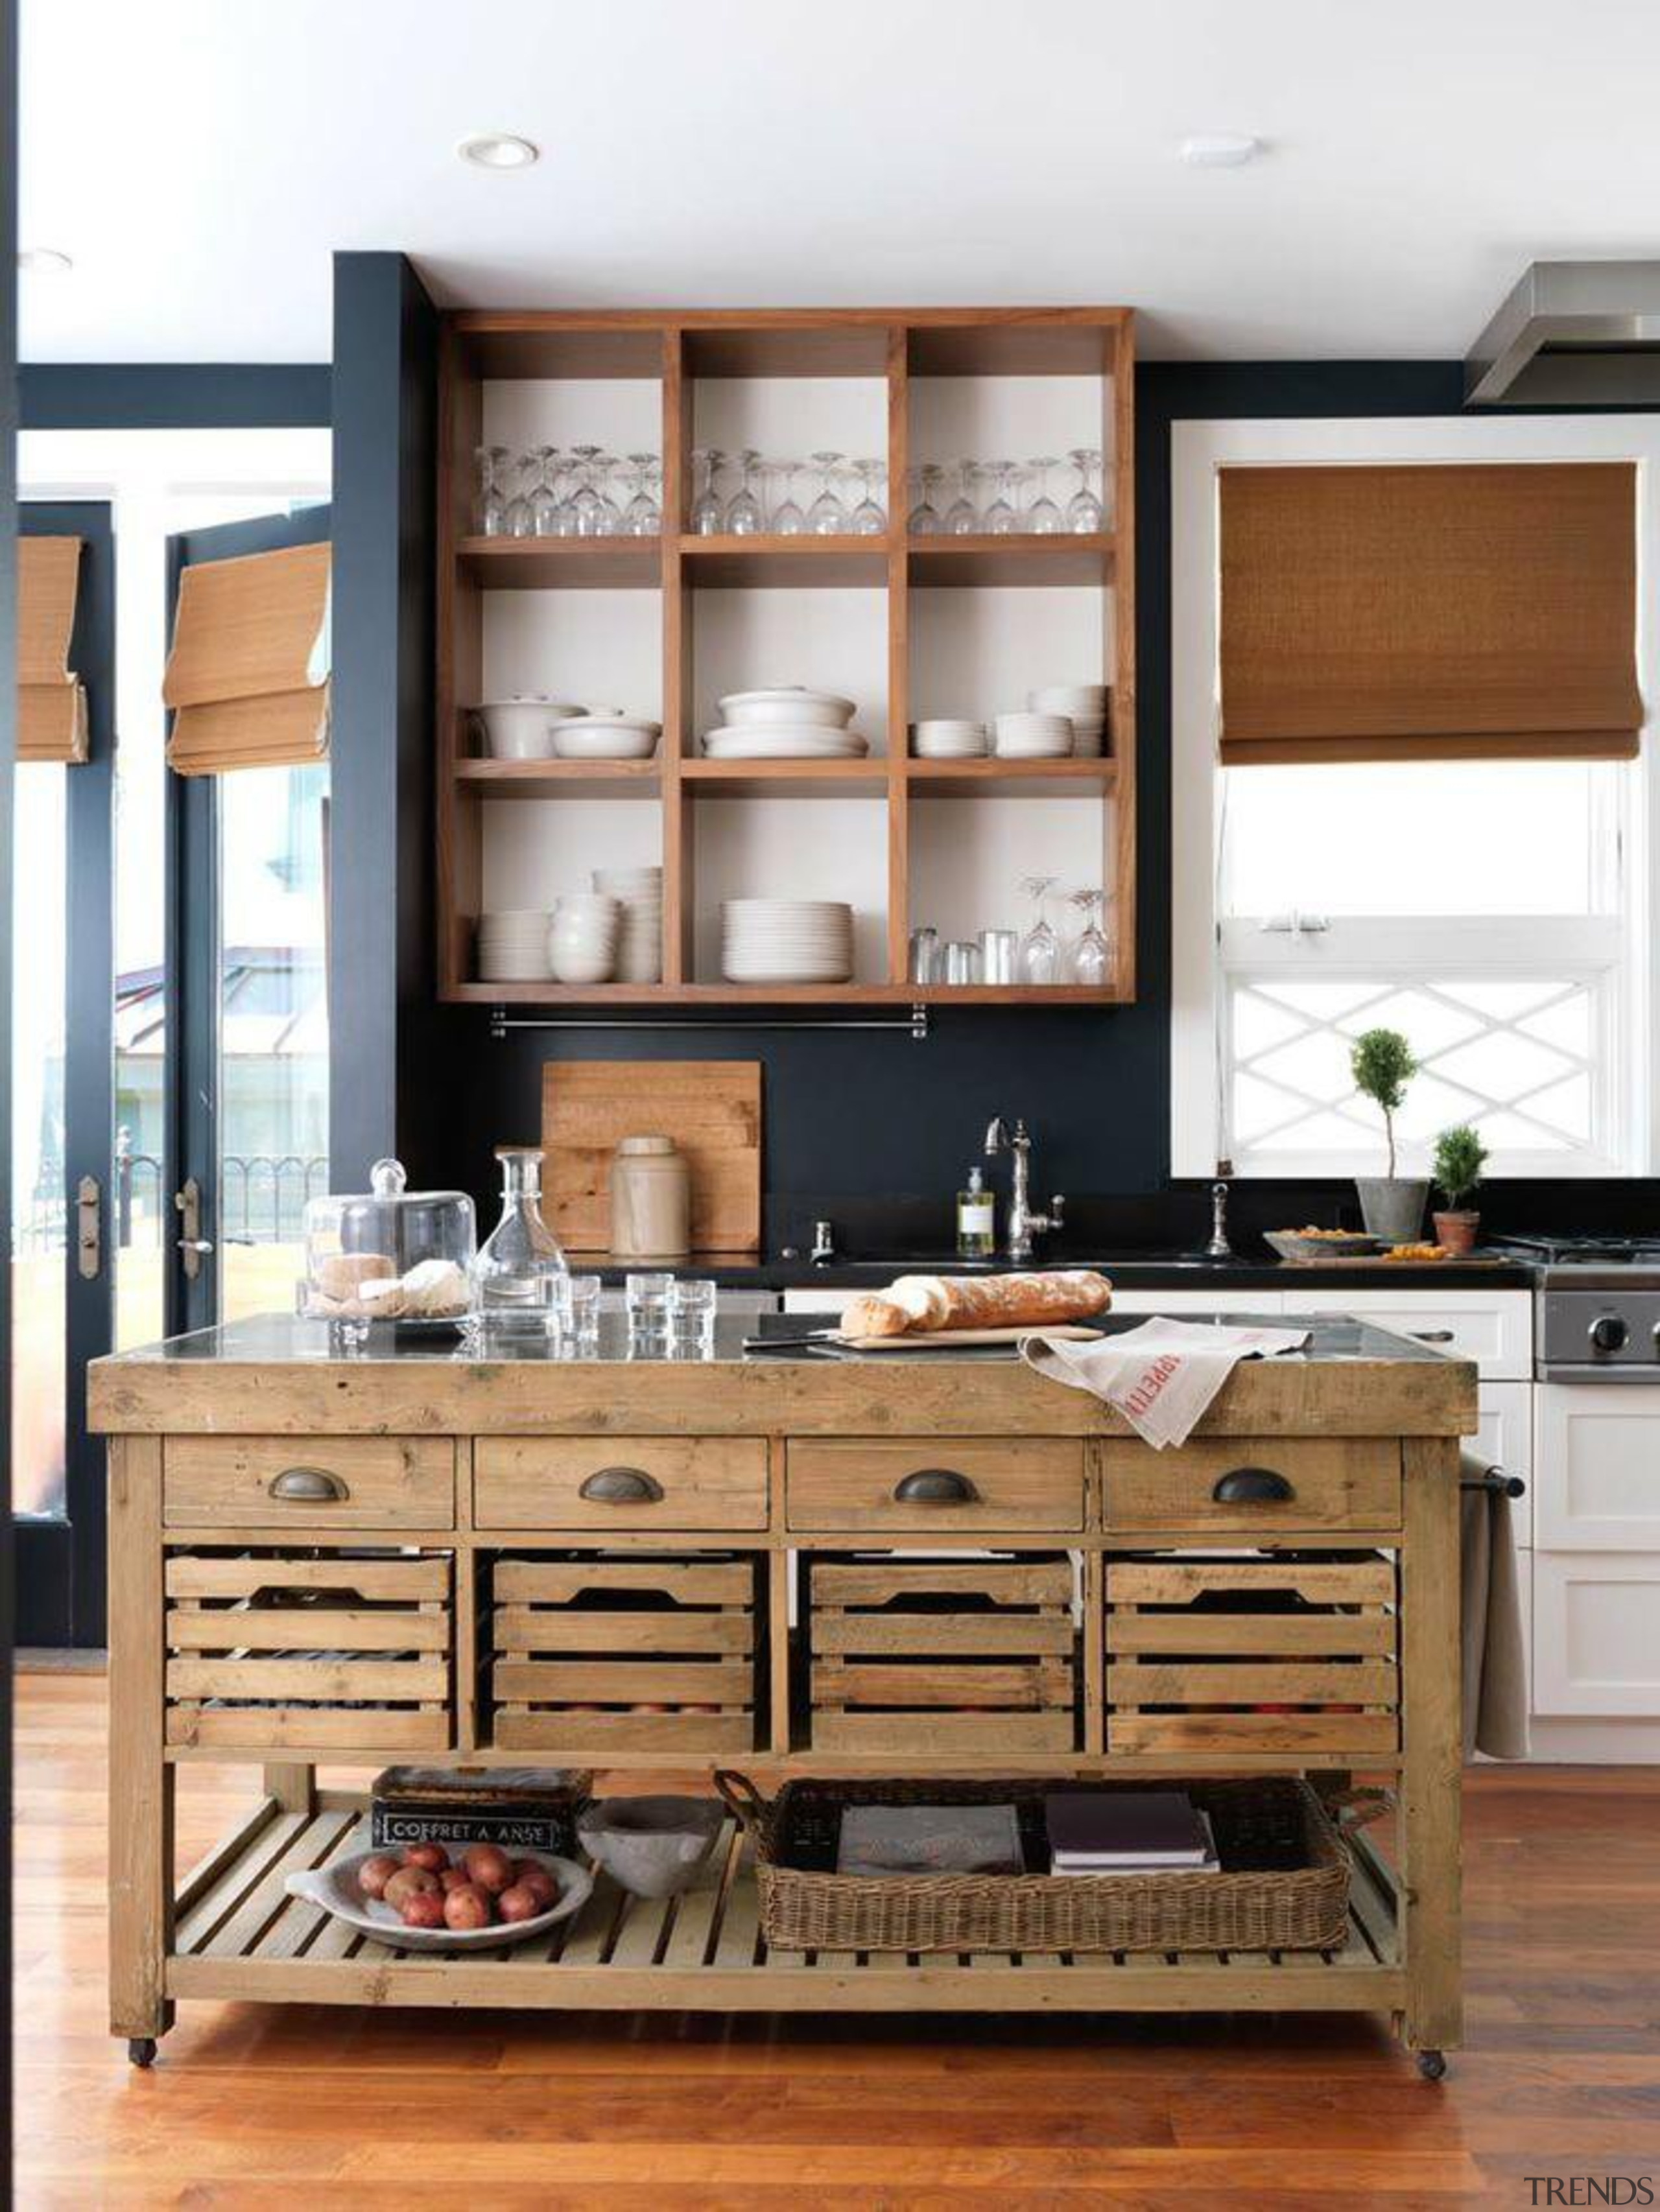 Start a myTrends ProjectCreate an ideas hub for cabinetry, countertop, cuisine classique, furniture, interior design, kitchen, room, white